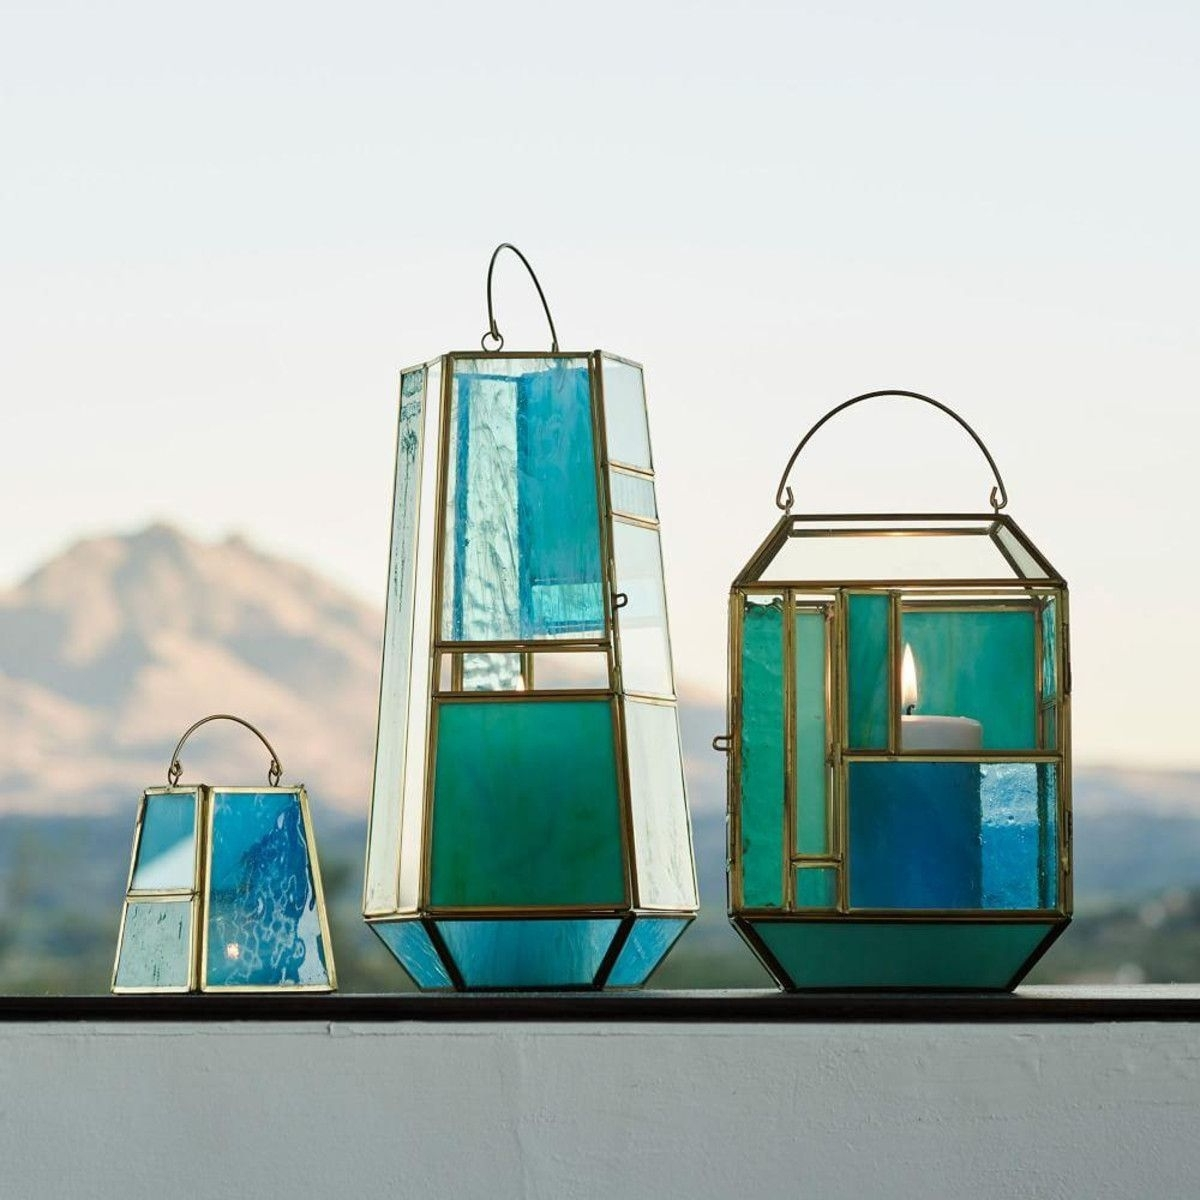 Hang These Stained Glass-Inspired Lanterns Inside Or Outside, To for Outdoor Glass Lanterns (Image 7 of 20)